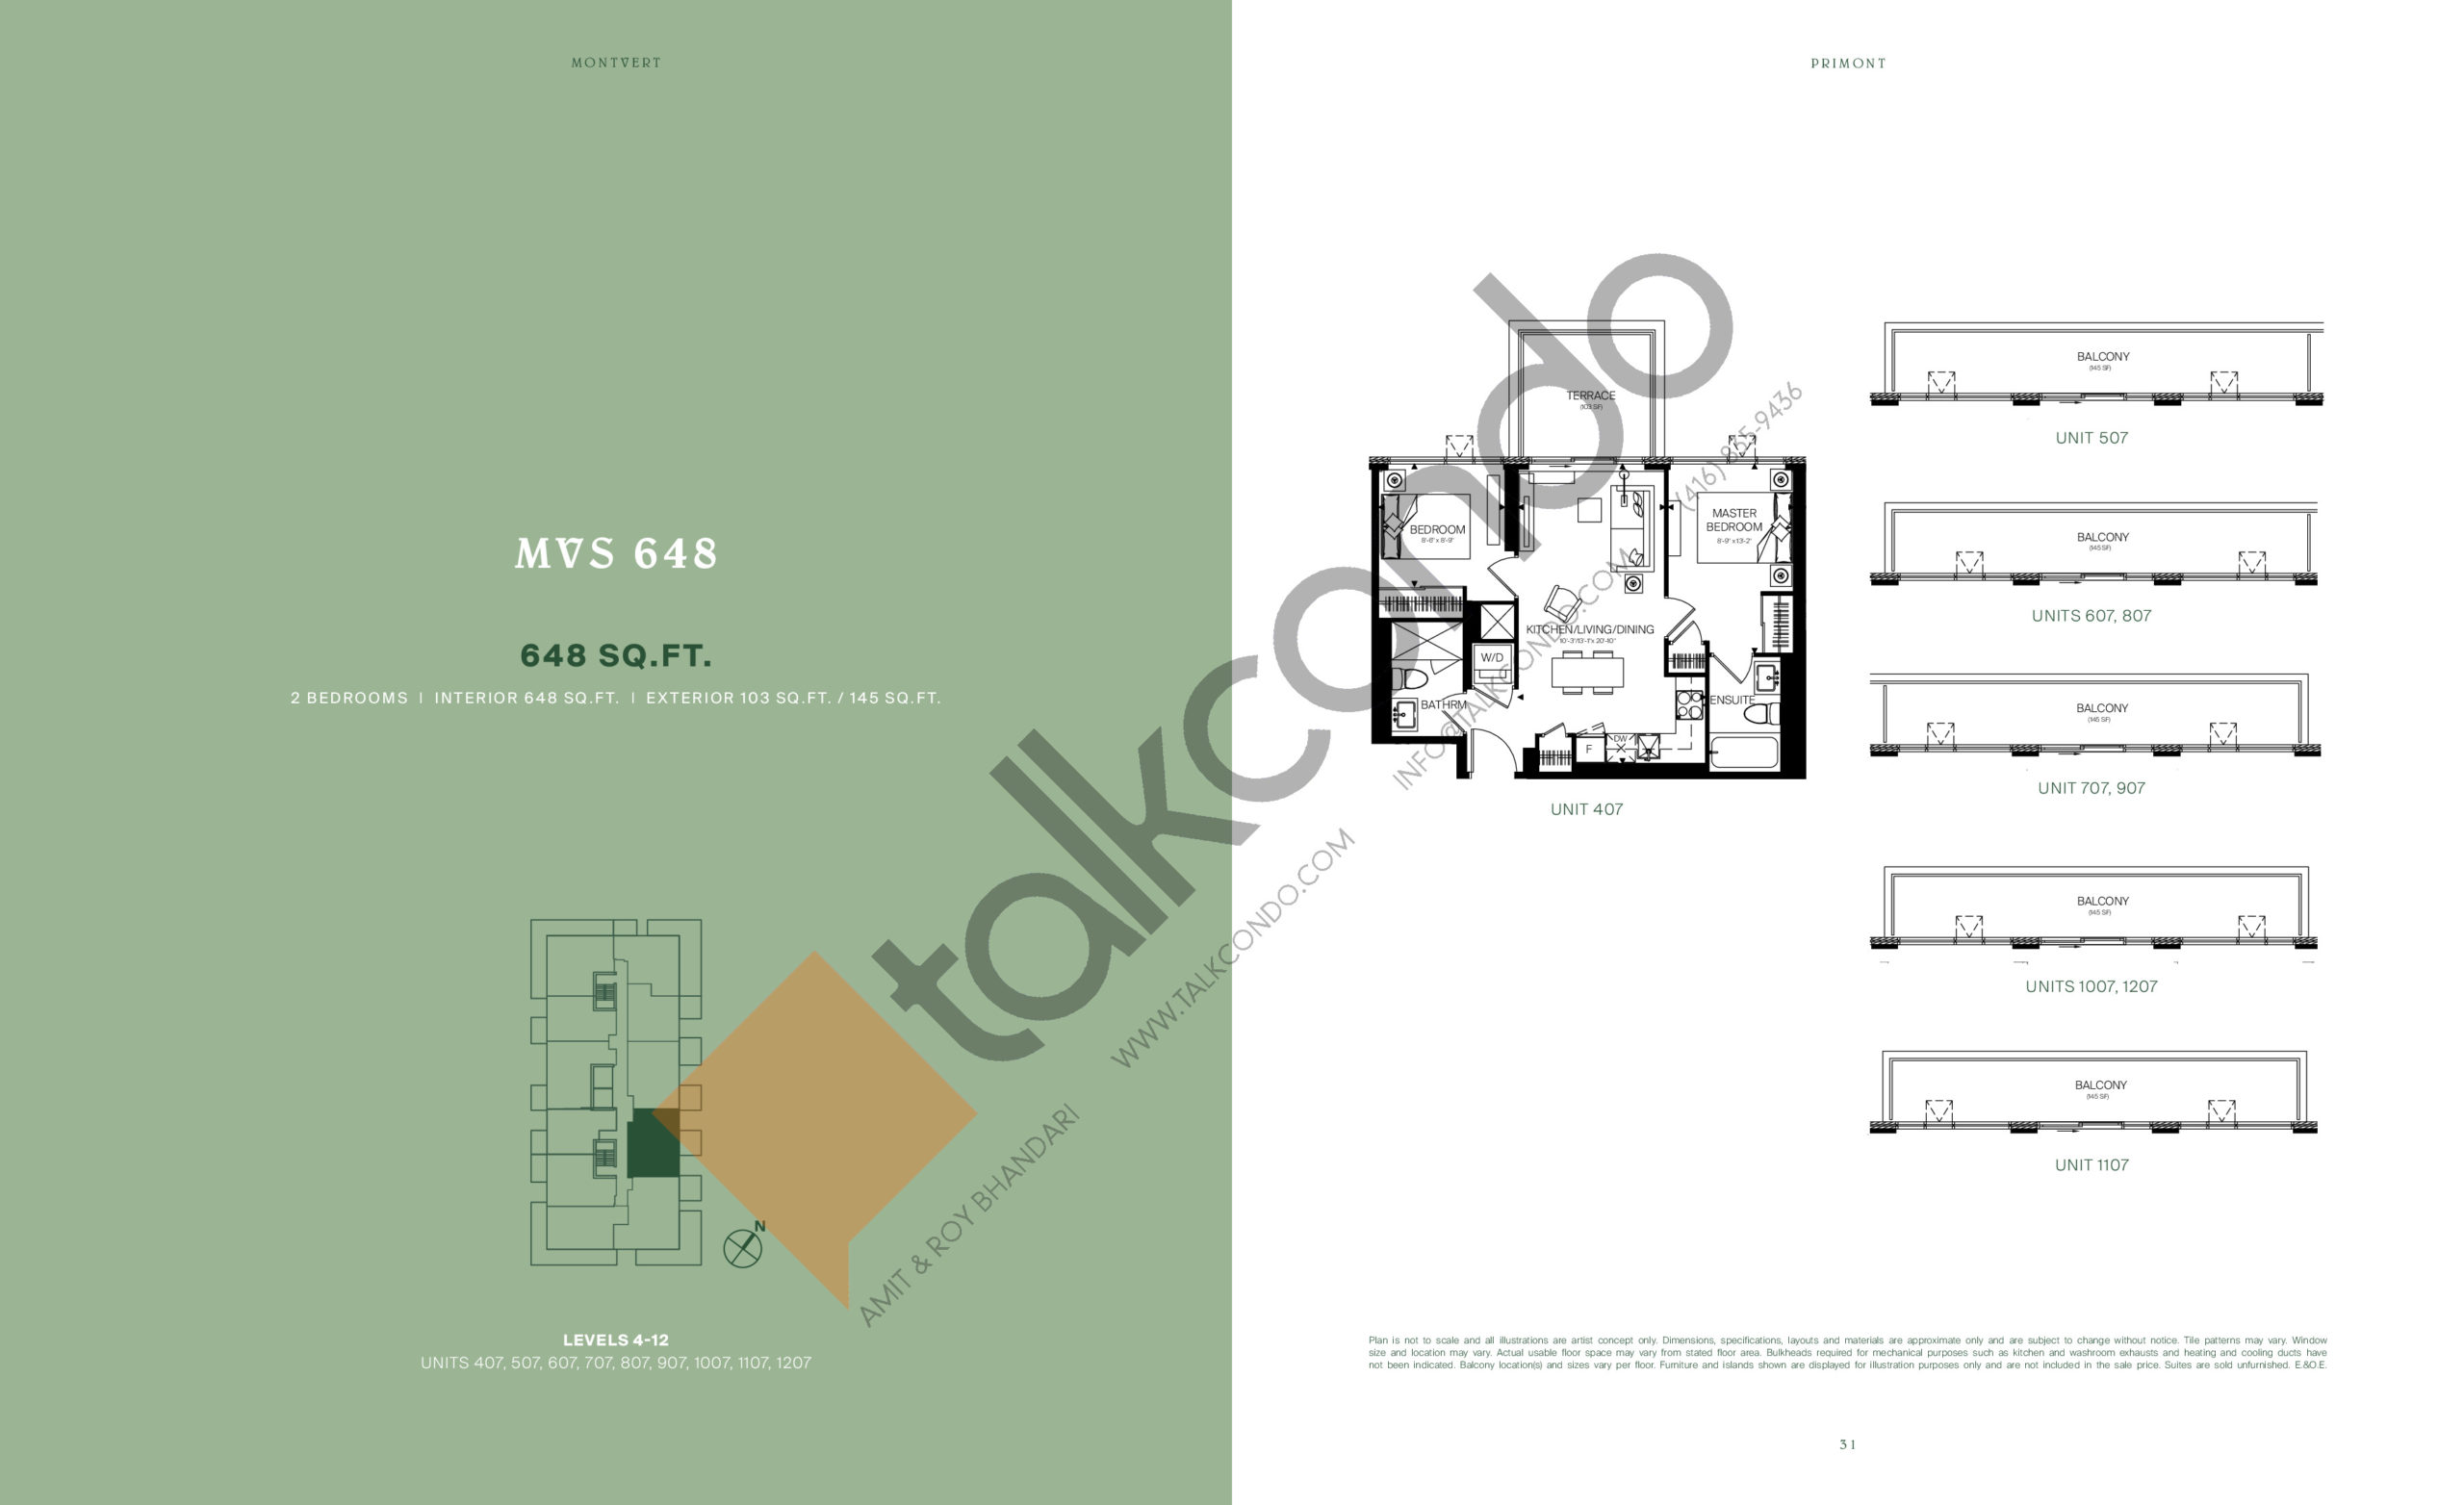 MVS 648 Floor Plan at MontVert Condos - 648 sq.ft